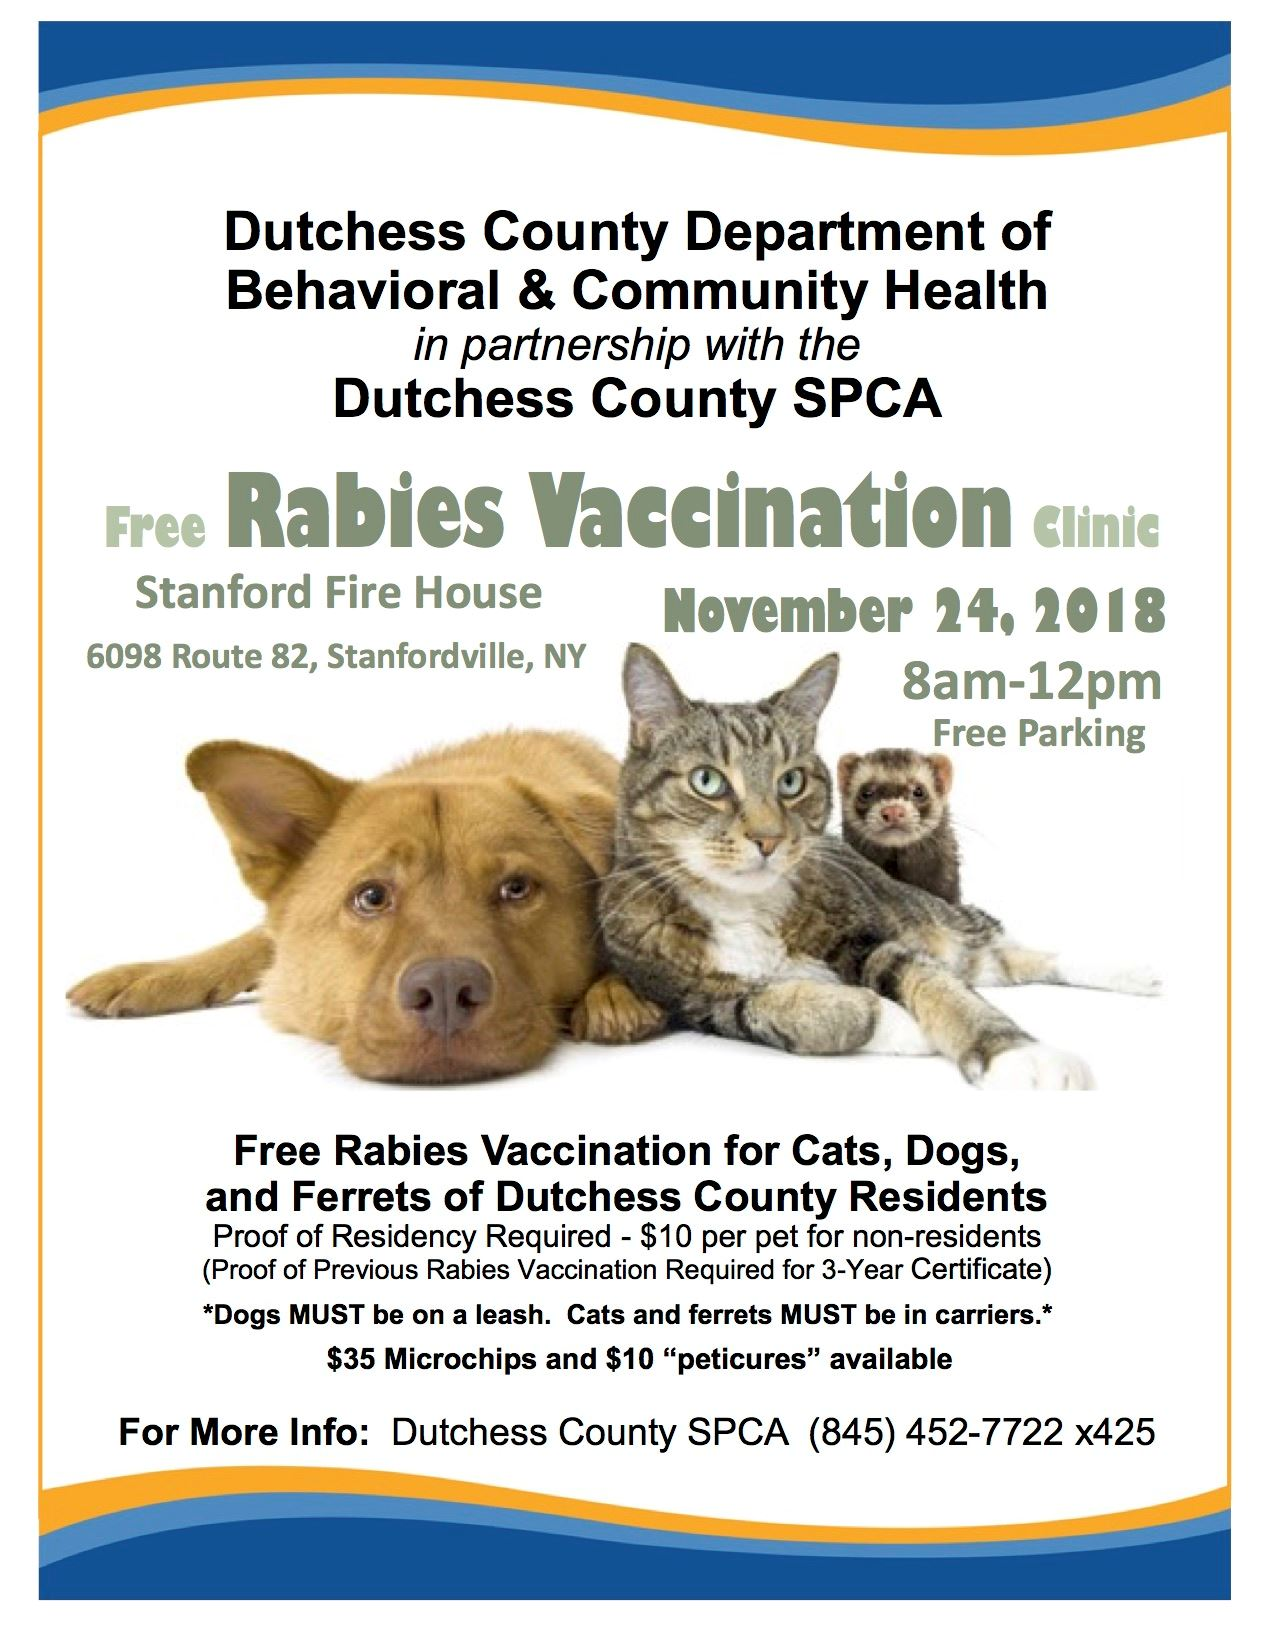 Rabies Vaccination Clinic Flyer